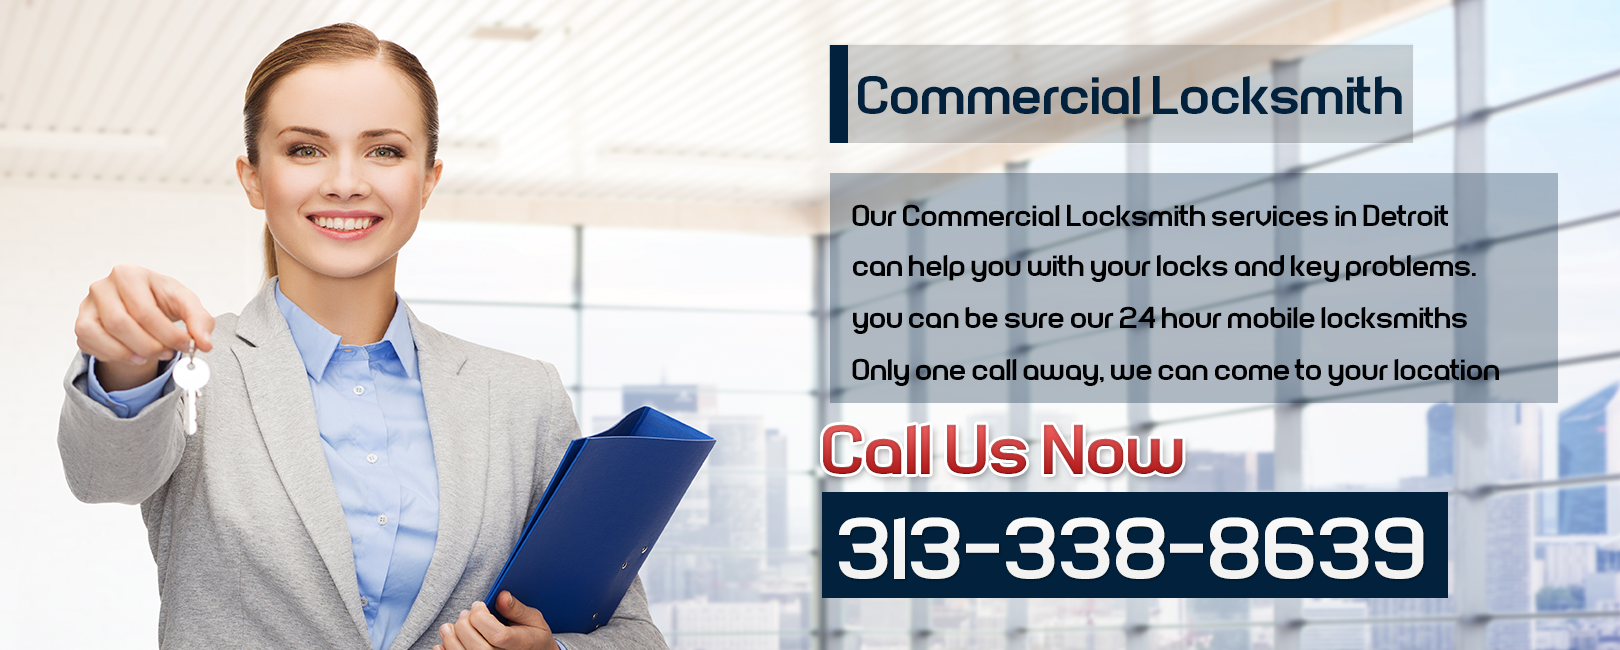 Commercial Locksmith Taylor MI